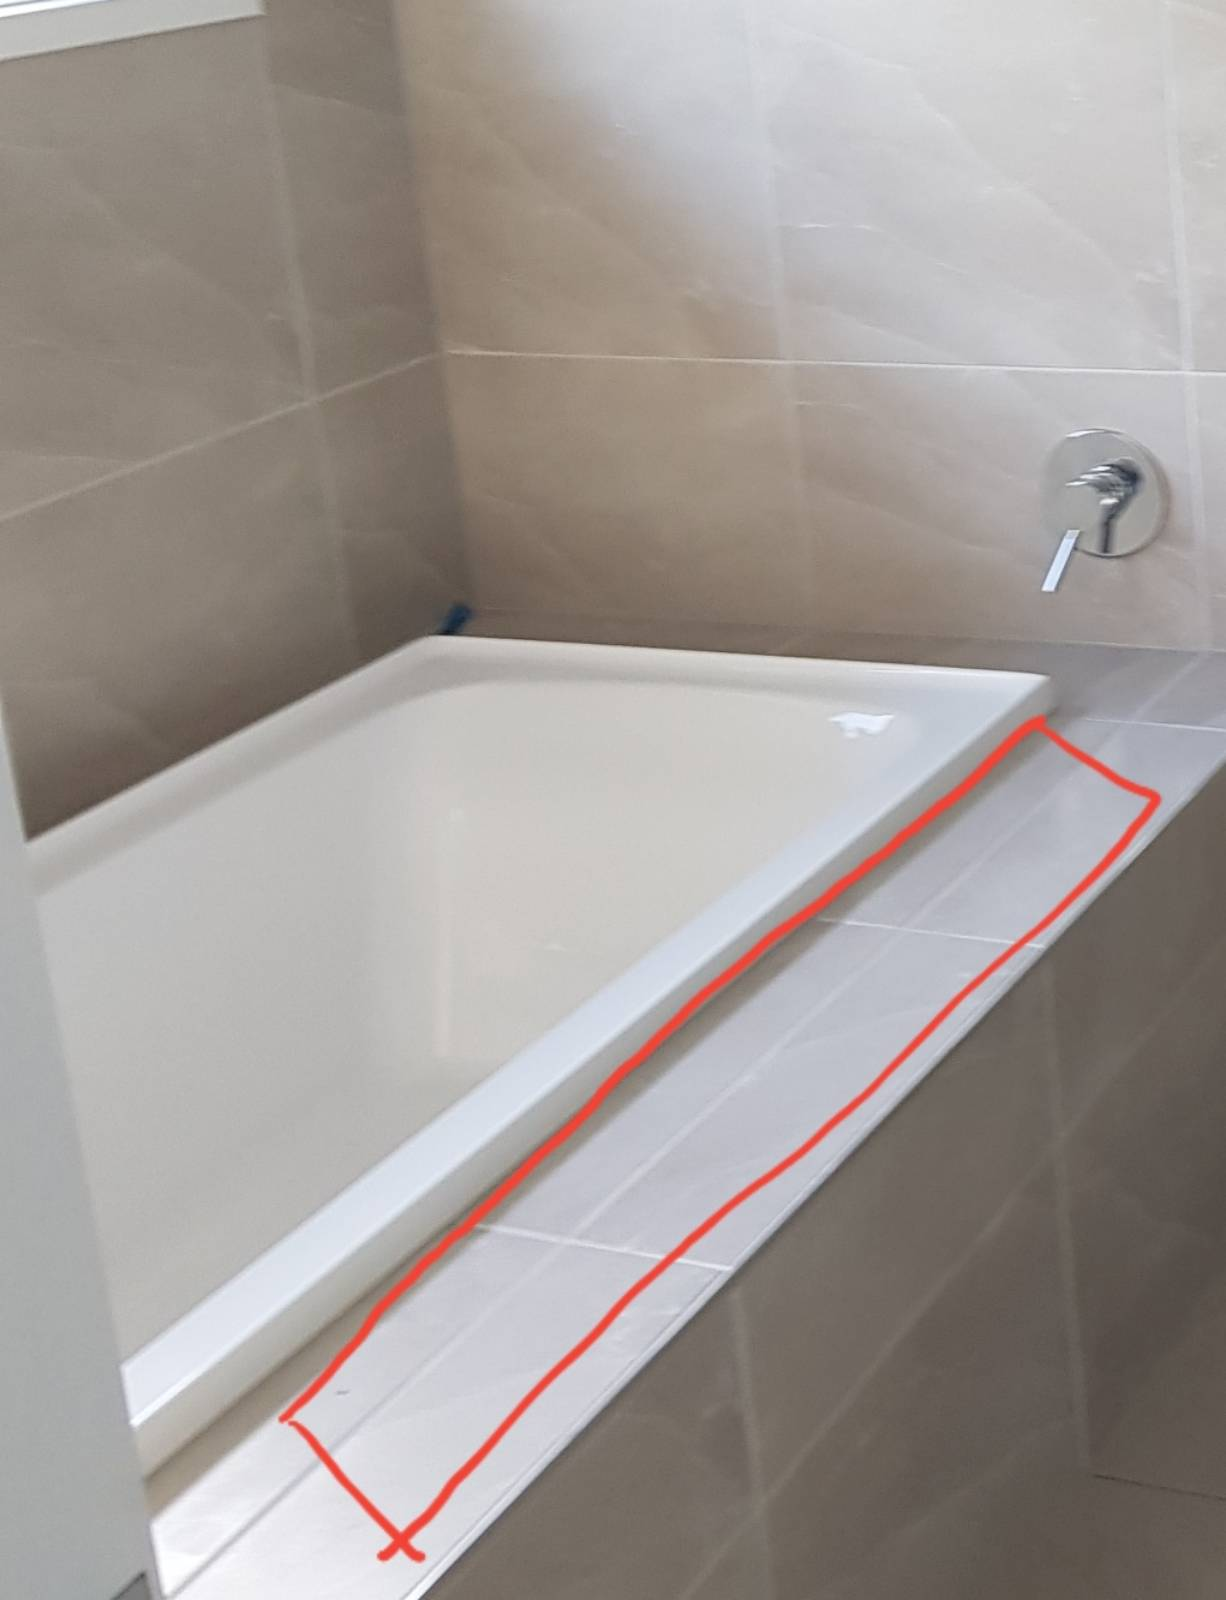 Bath hob tiling and tub not centred as to plan